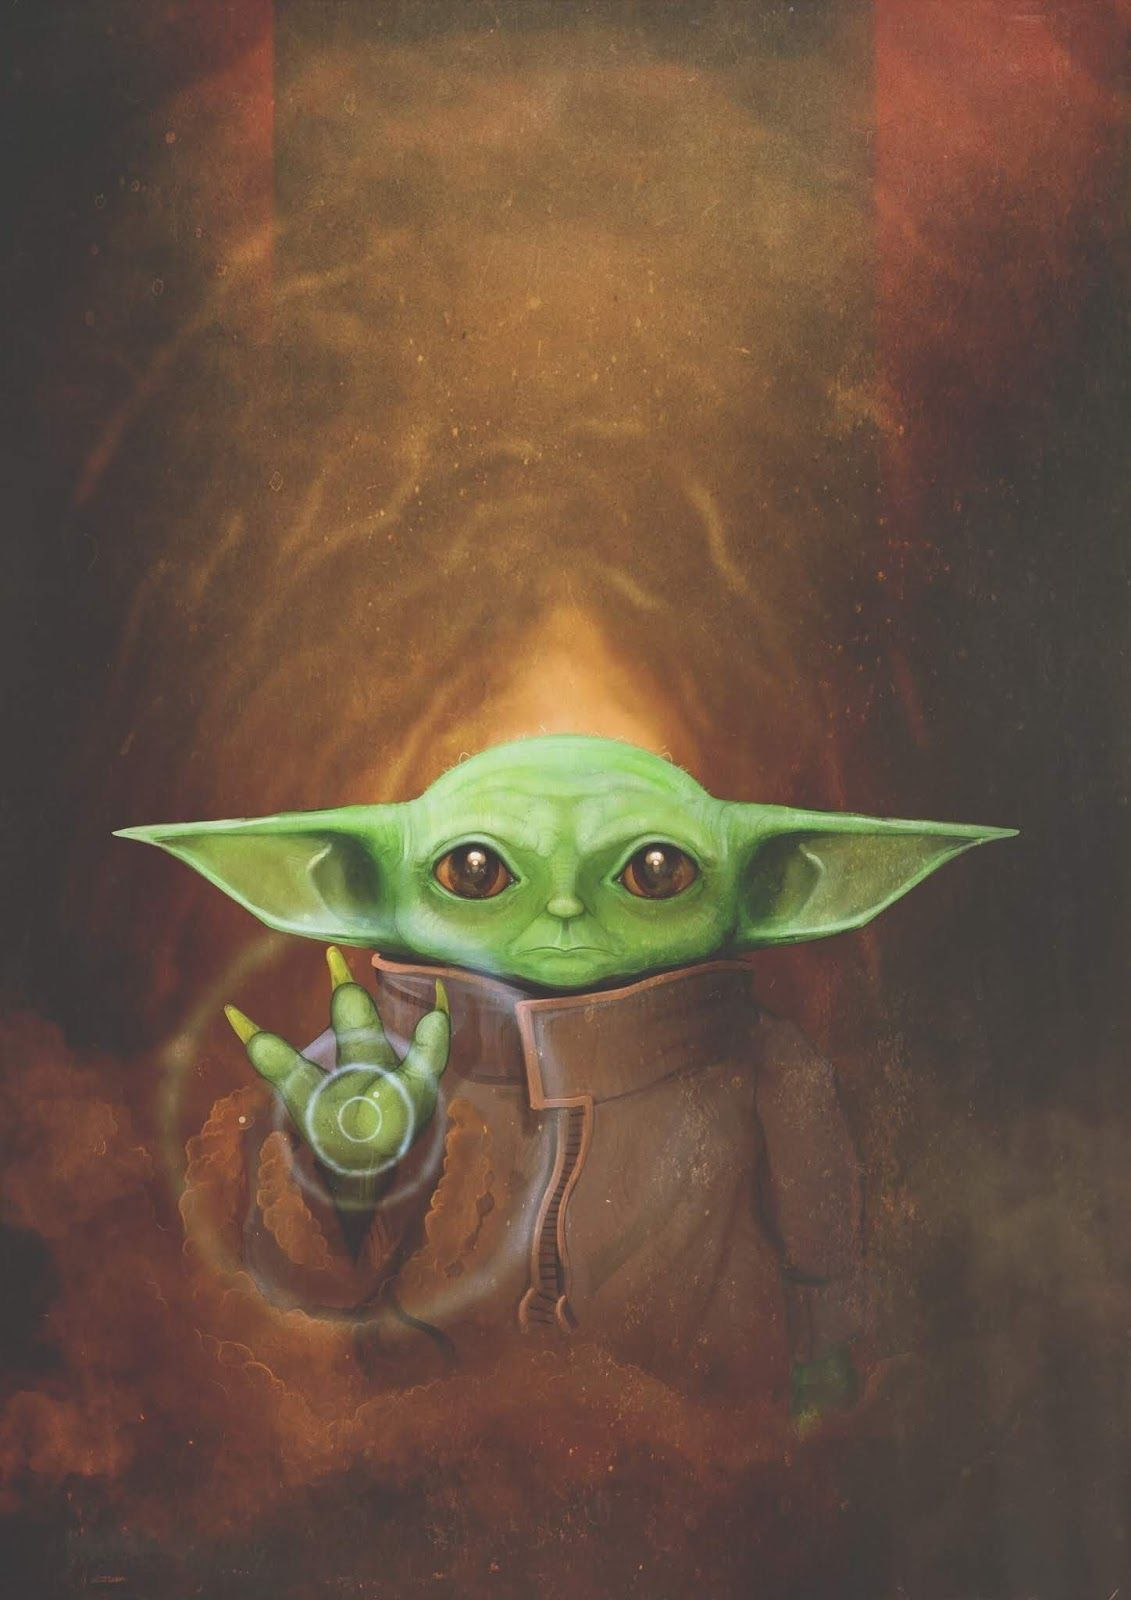 Pin by Jeanne Loves Horror💀🔪 on Baby Yoda in 2020 (With